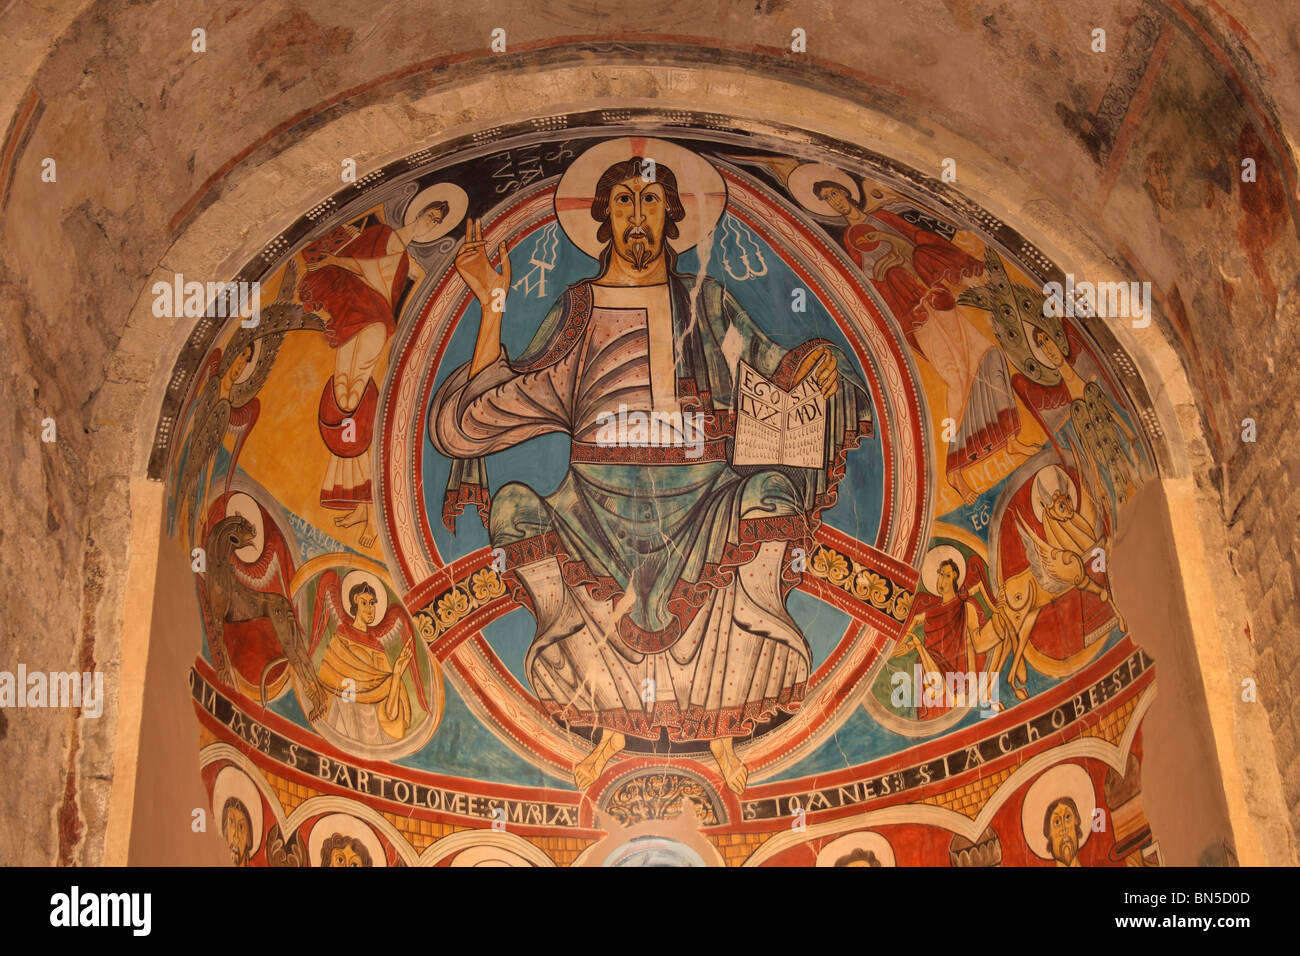 Romanesque Mural, Sant Climent de Taull Church, Taull, Vall de Boi, Pyrenees, Catalunya, Spain - Stock Image